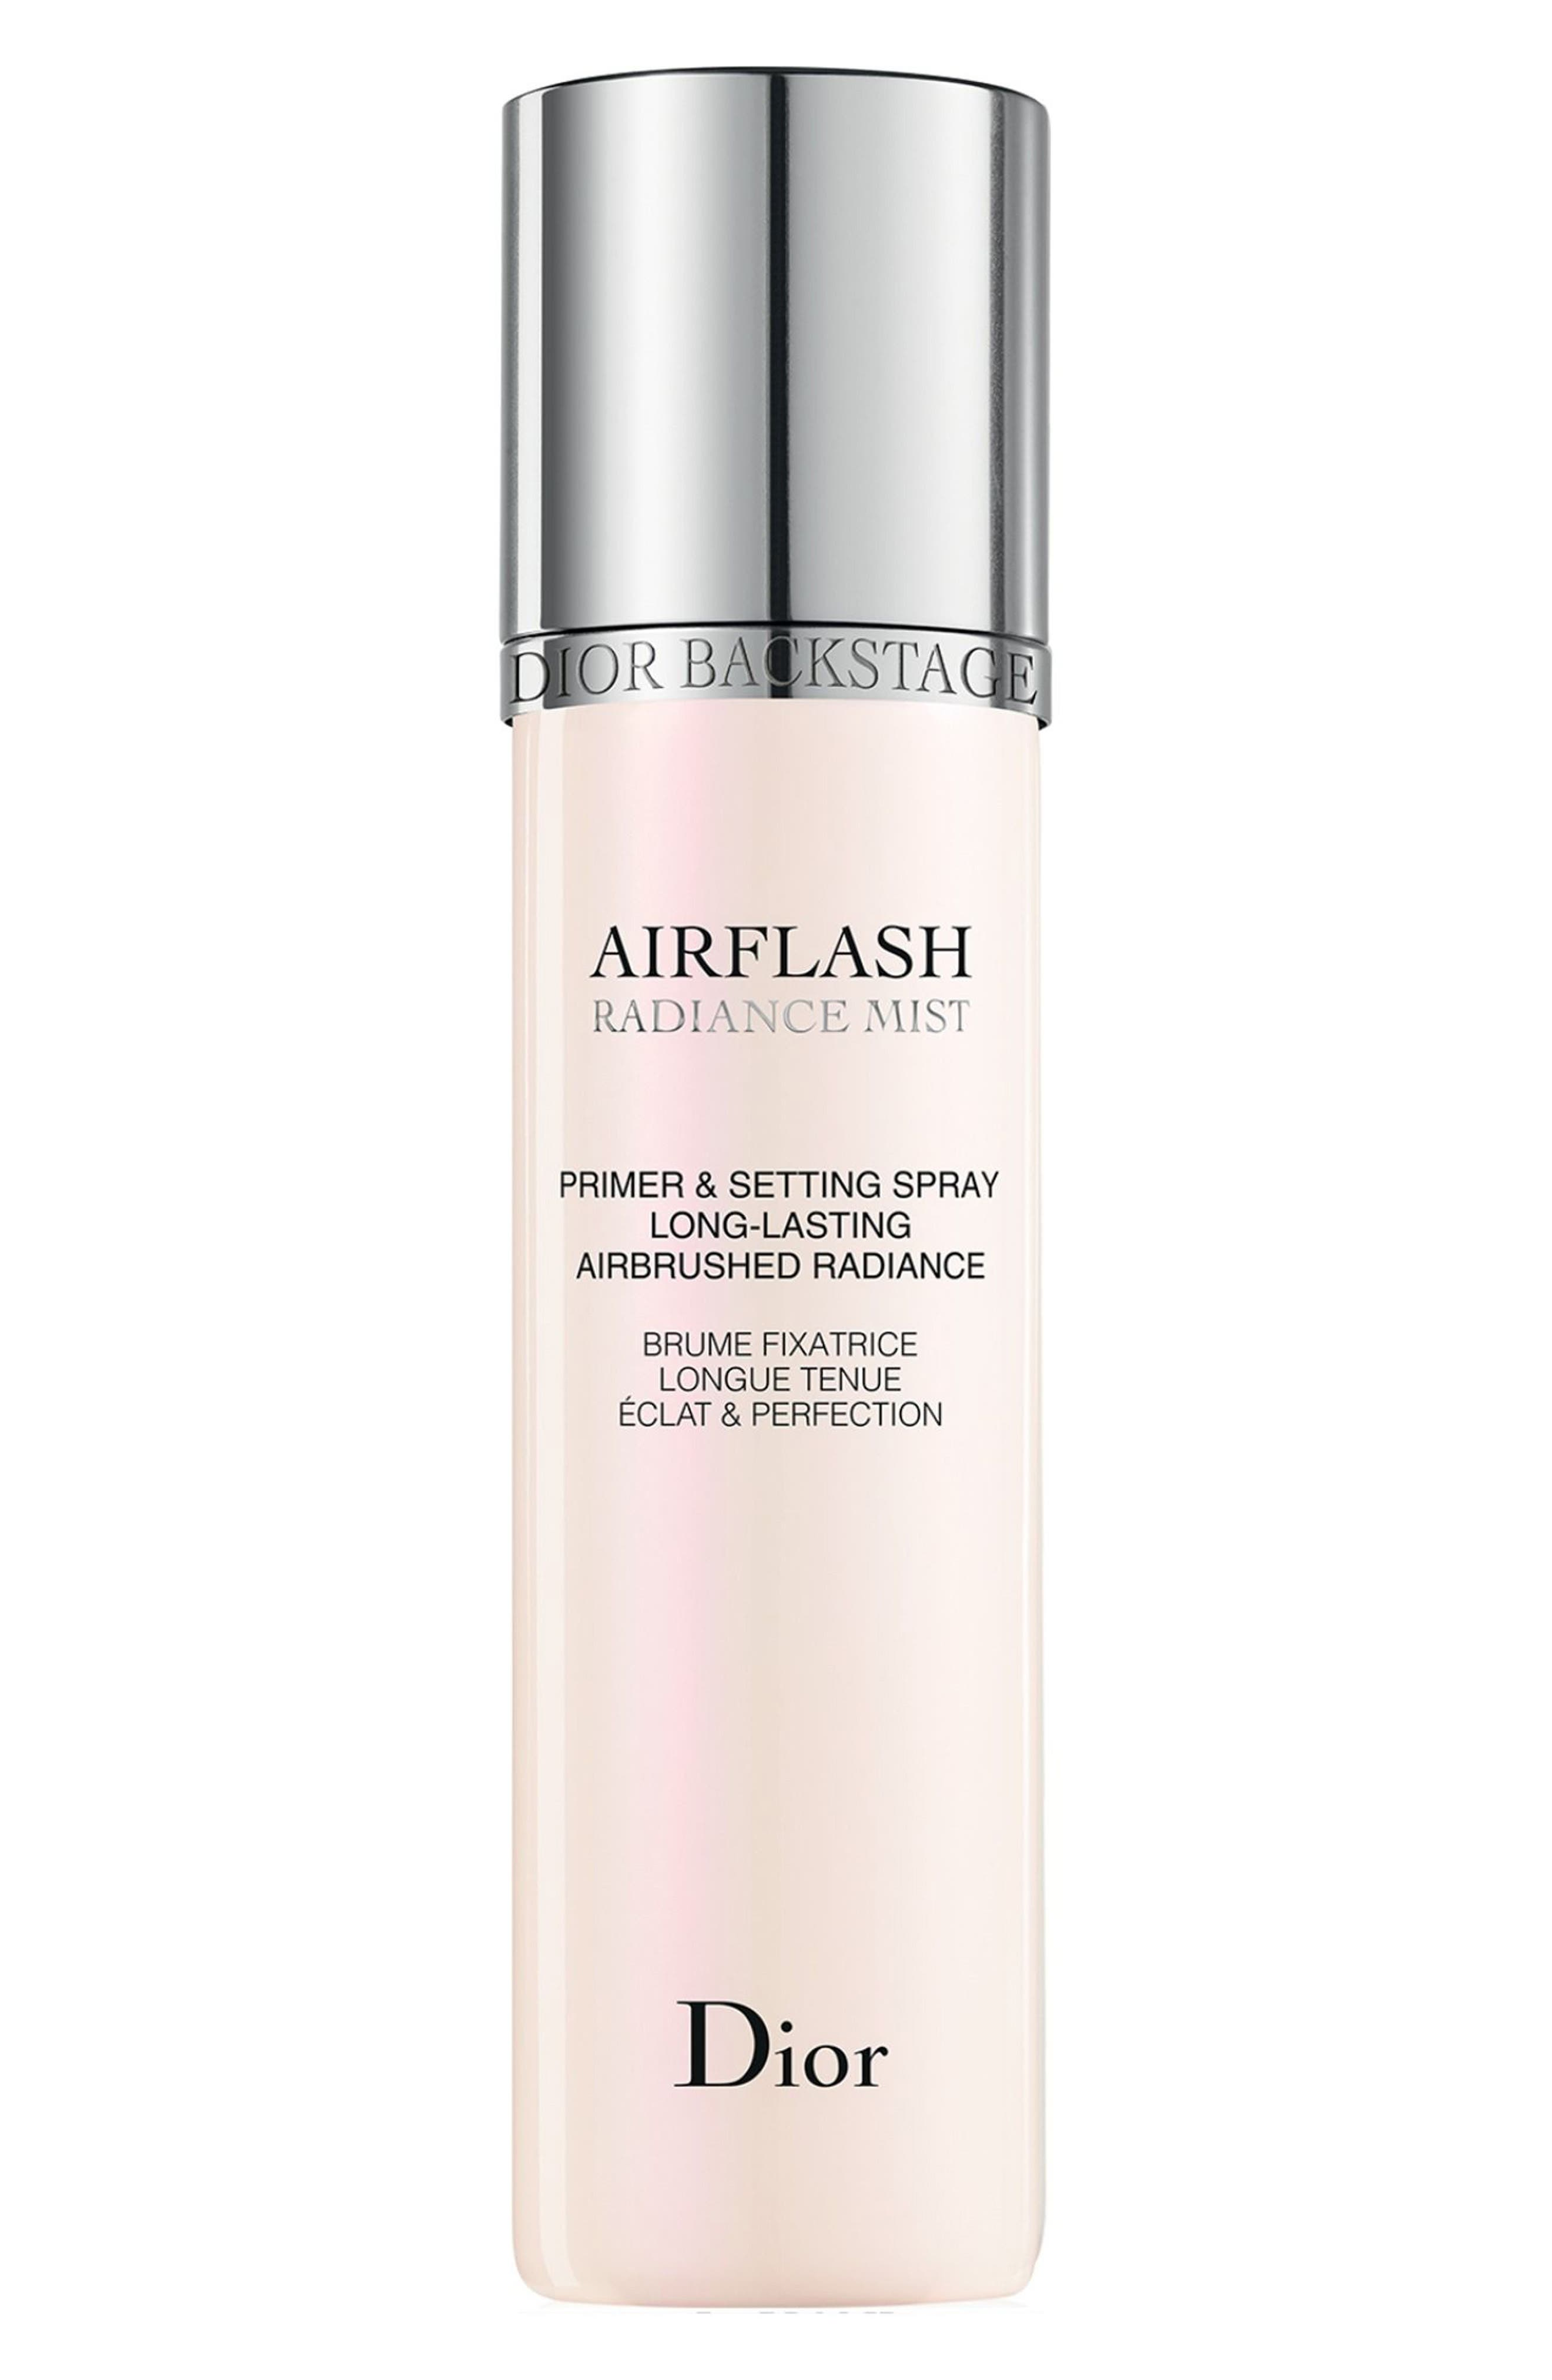 Backstage Airflash Radiance Mist Primer & Setting Spray,                             Main thumbnail 1, color,                             900